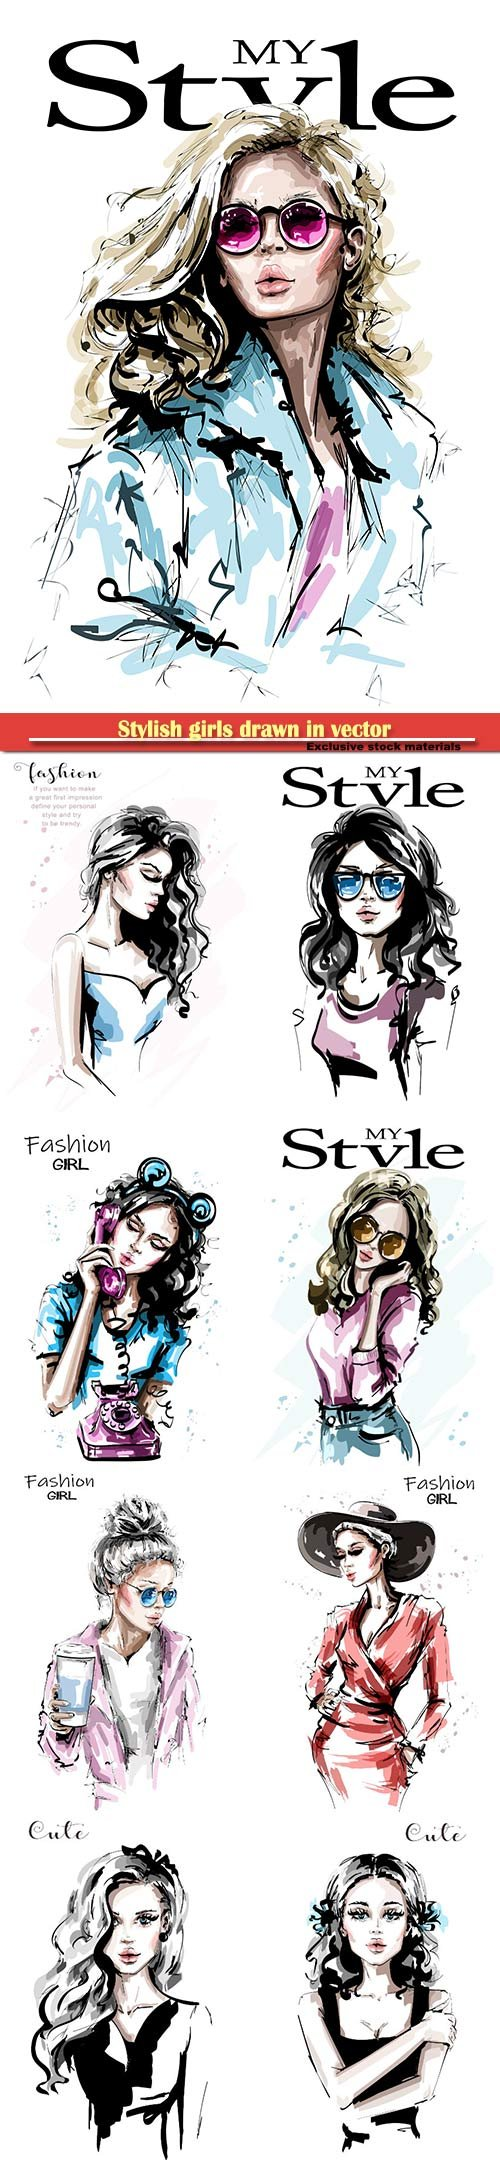 Stylish girls drawn in vector